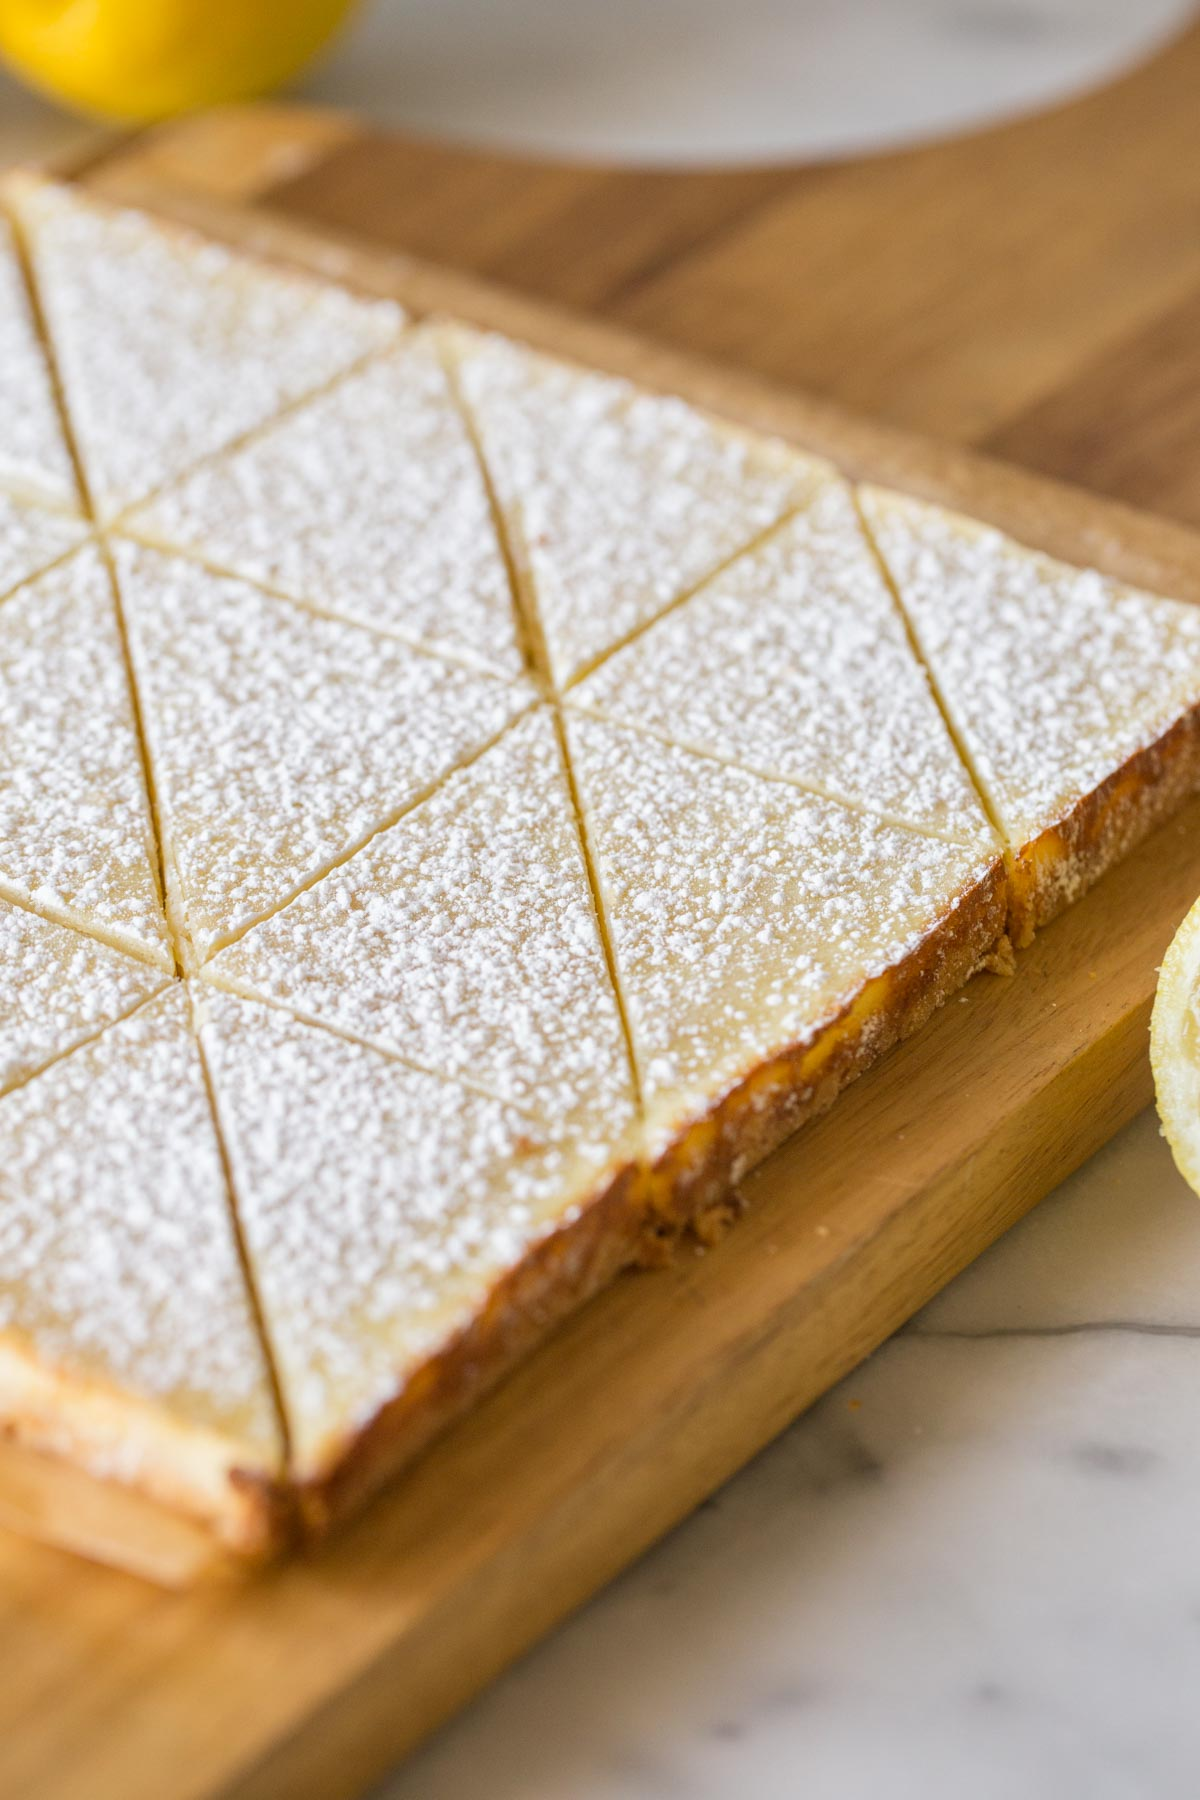 Swedish Lemon Bars on a wooden cutting board.